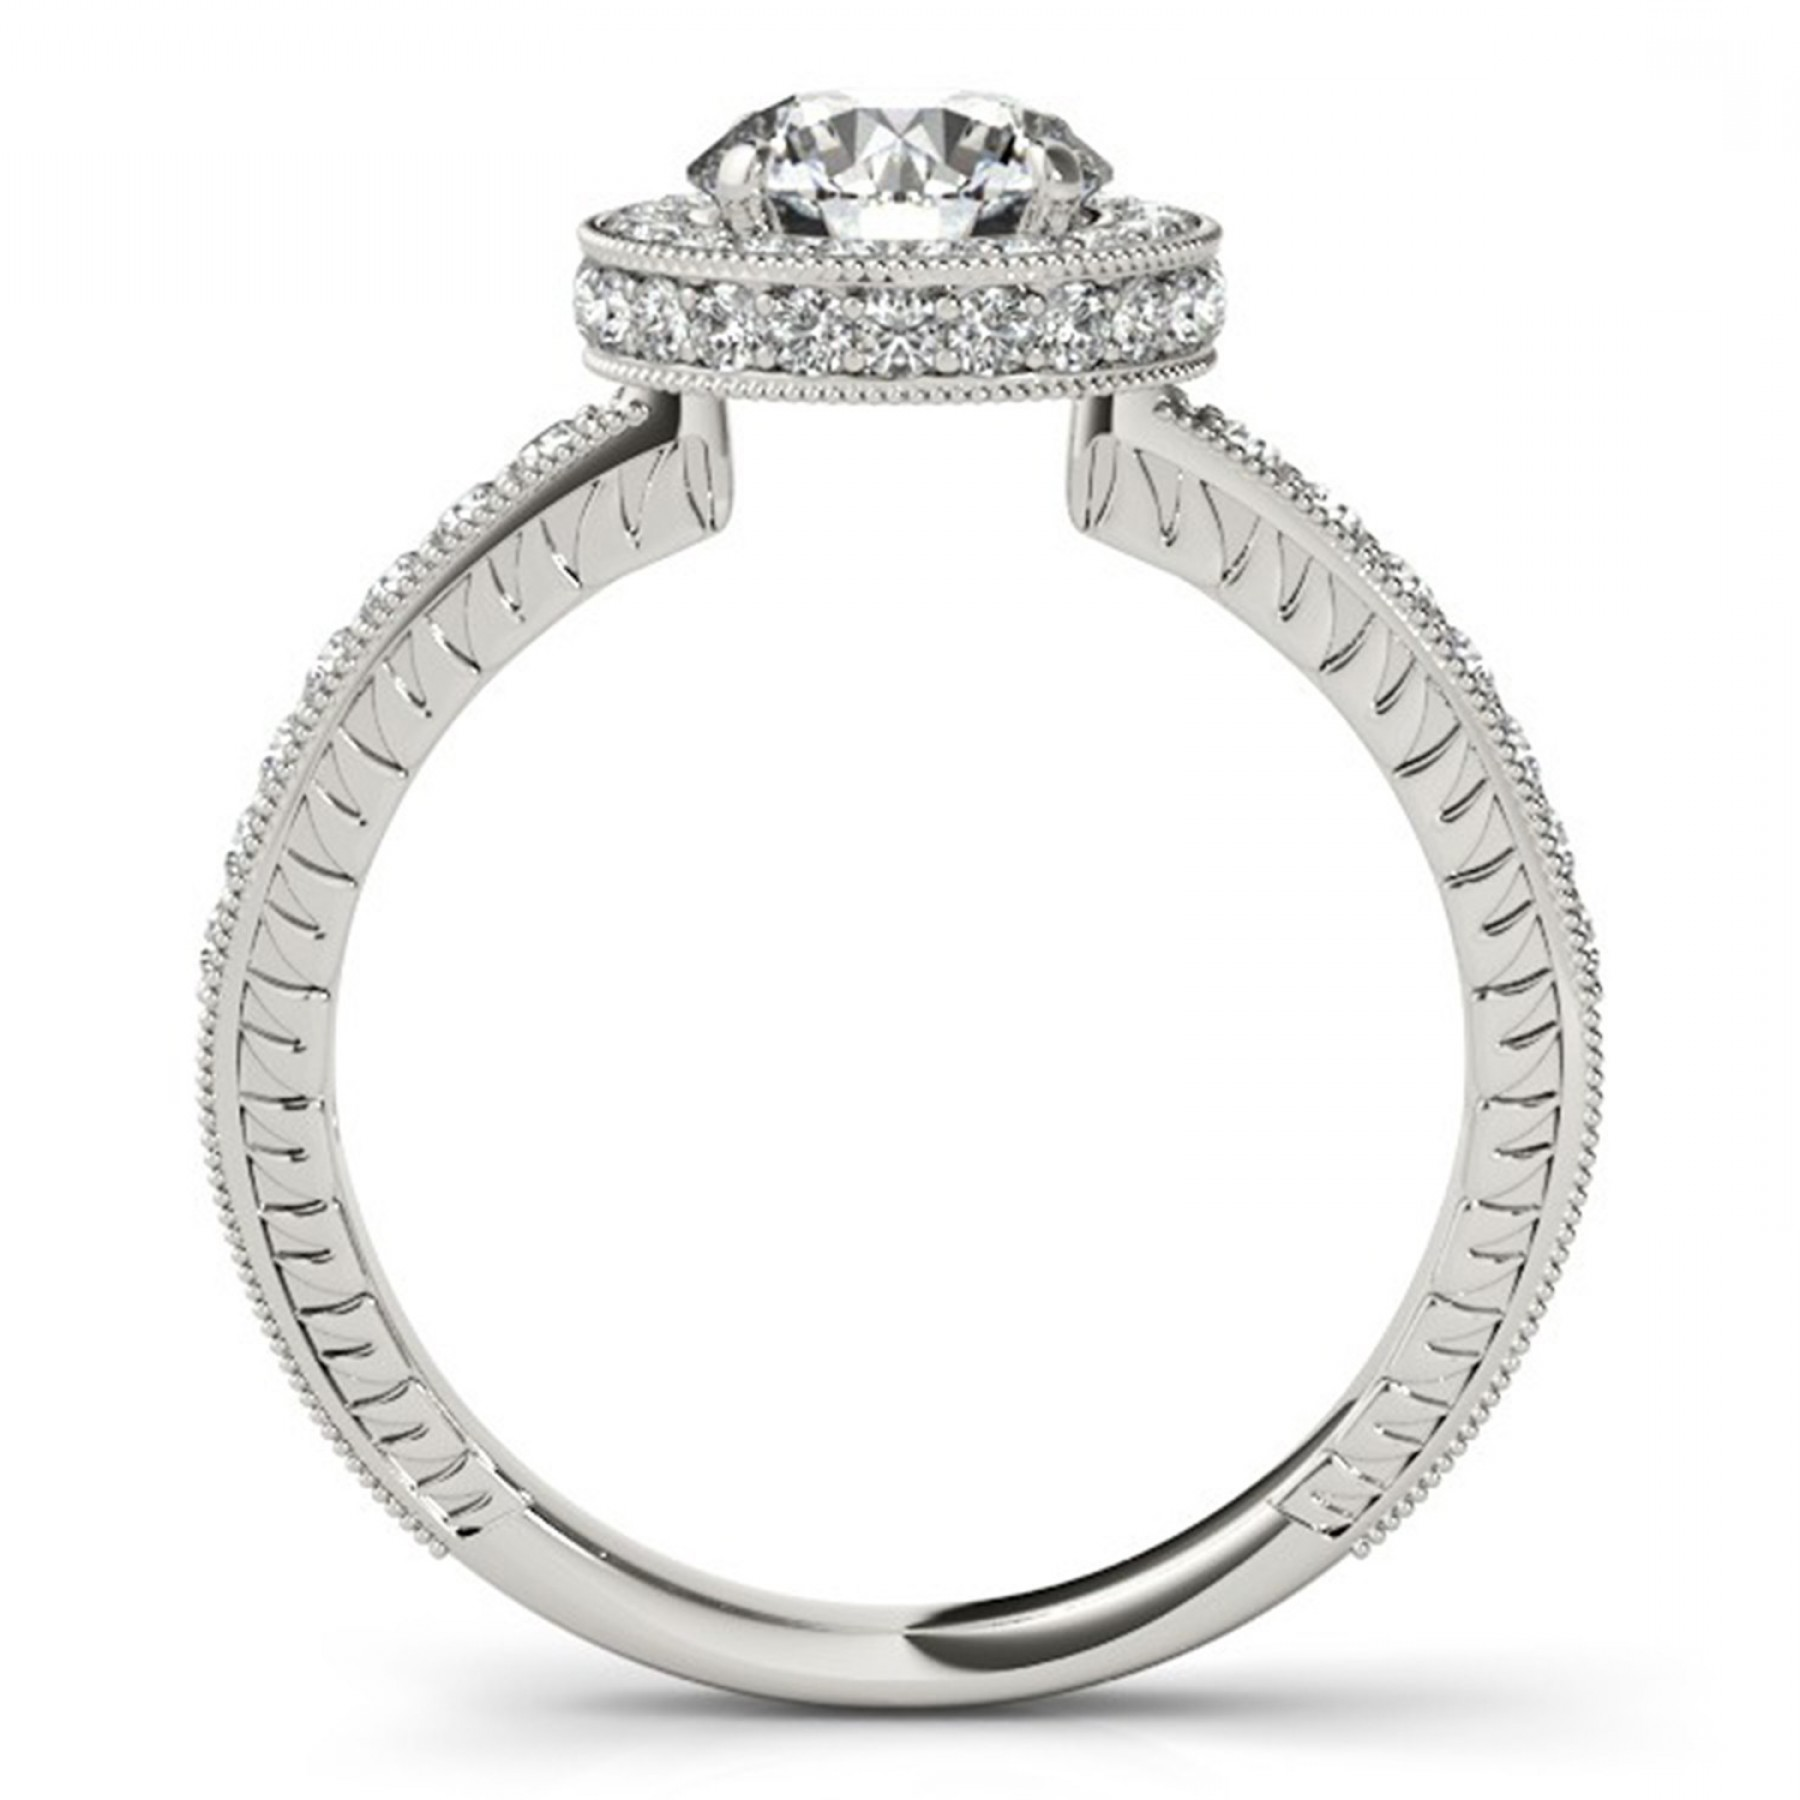 Diamond Rings Drawing At Getdrawings Com Free For Personal Use